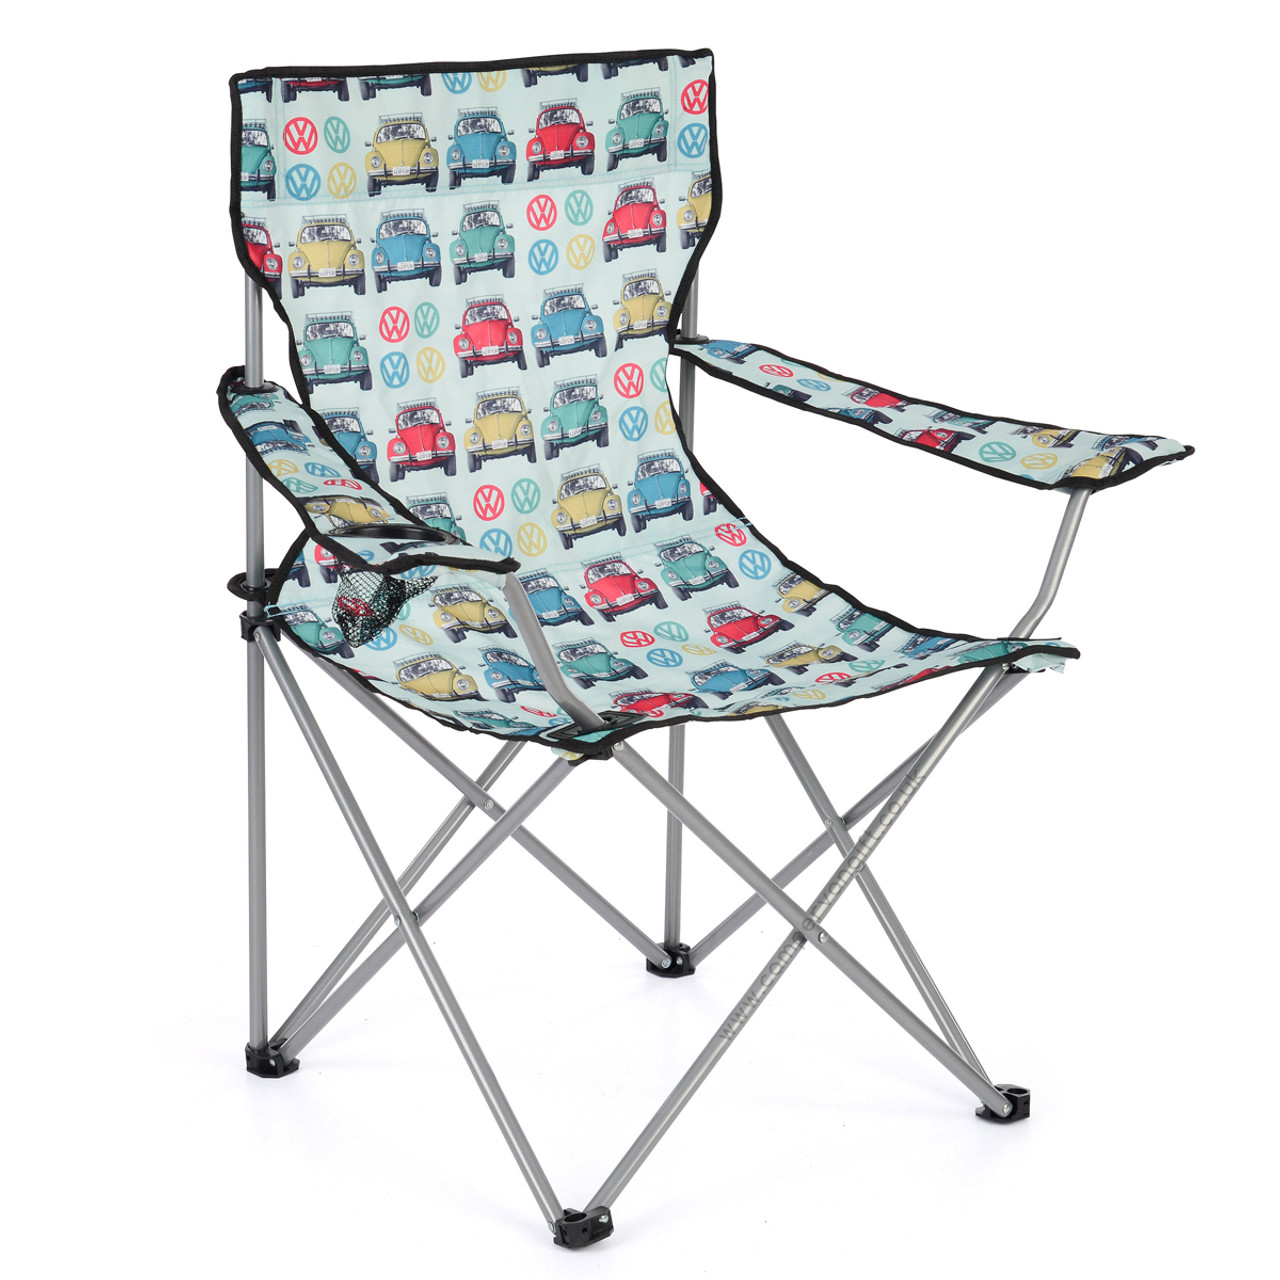 Folding Camp Chair Volkswagen Beetle Festival Folding Camping Chair